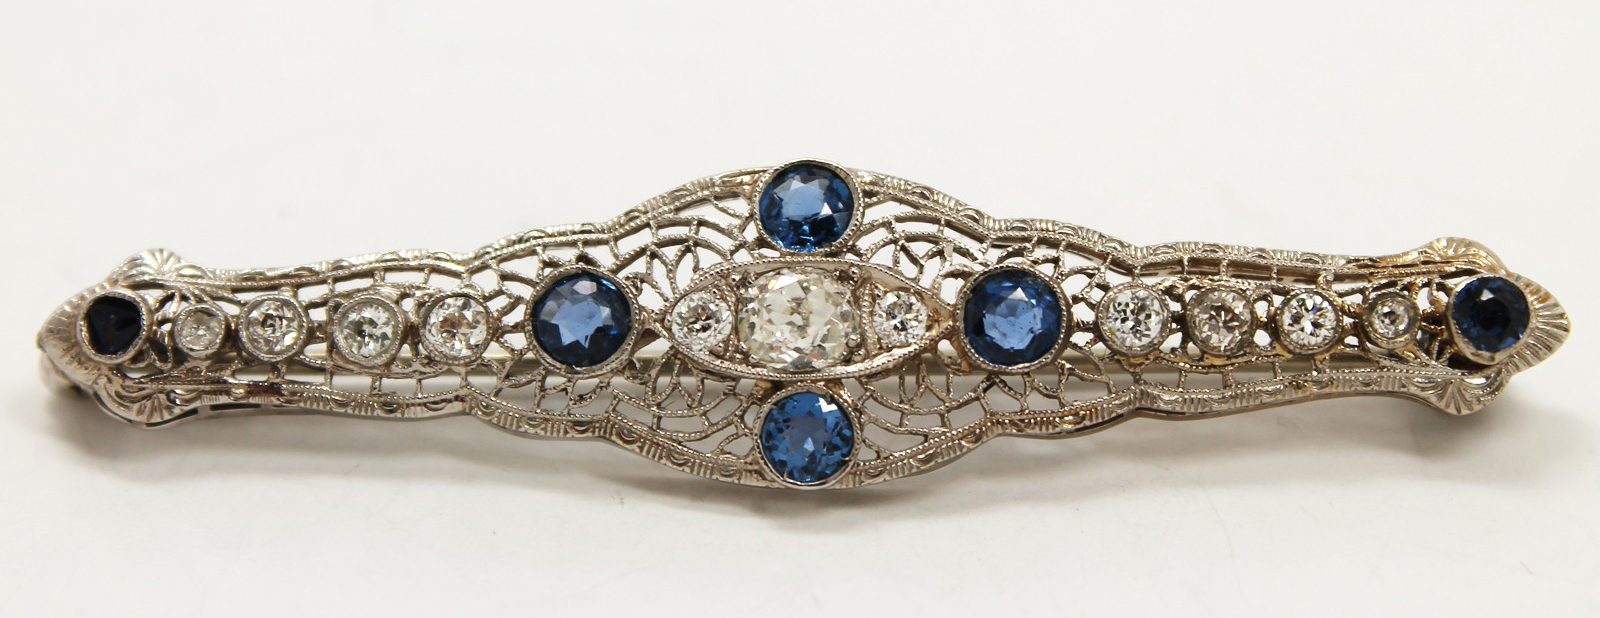 Antique Art Deco White Gold Filigree Diamond and Sapphire Brooch